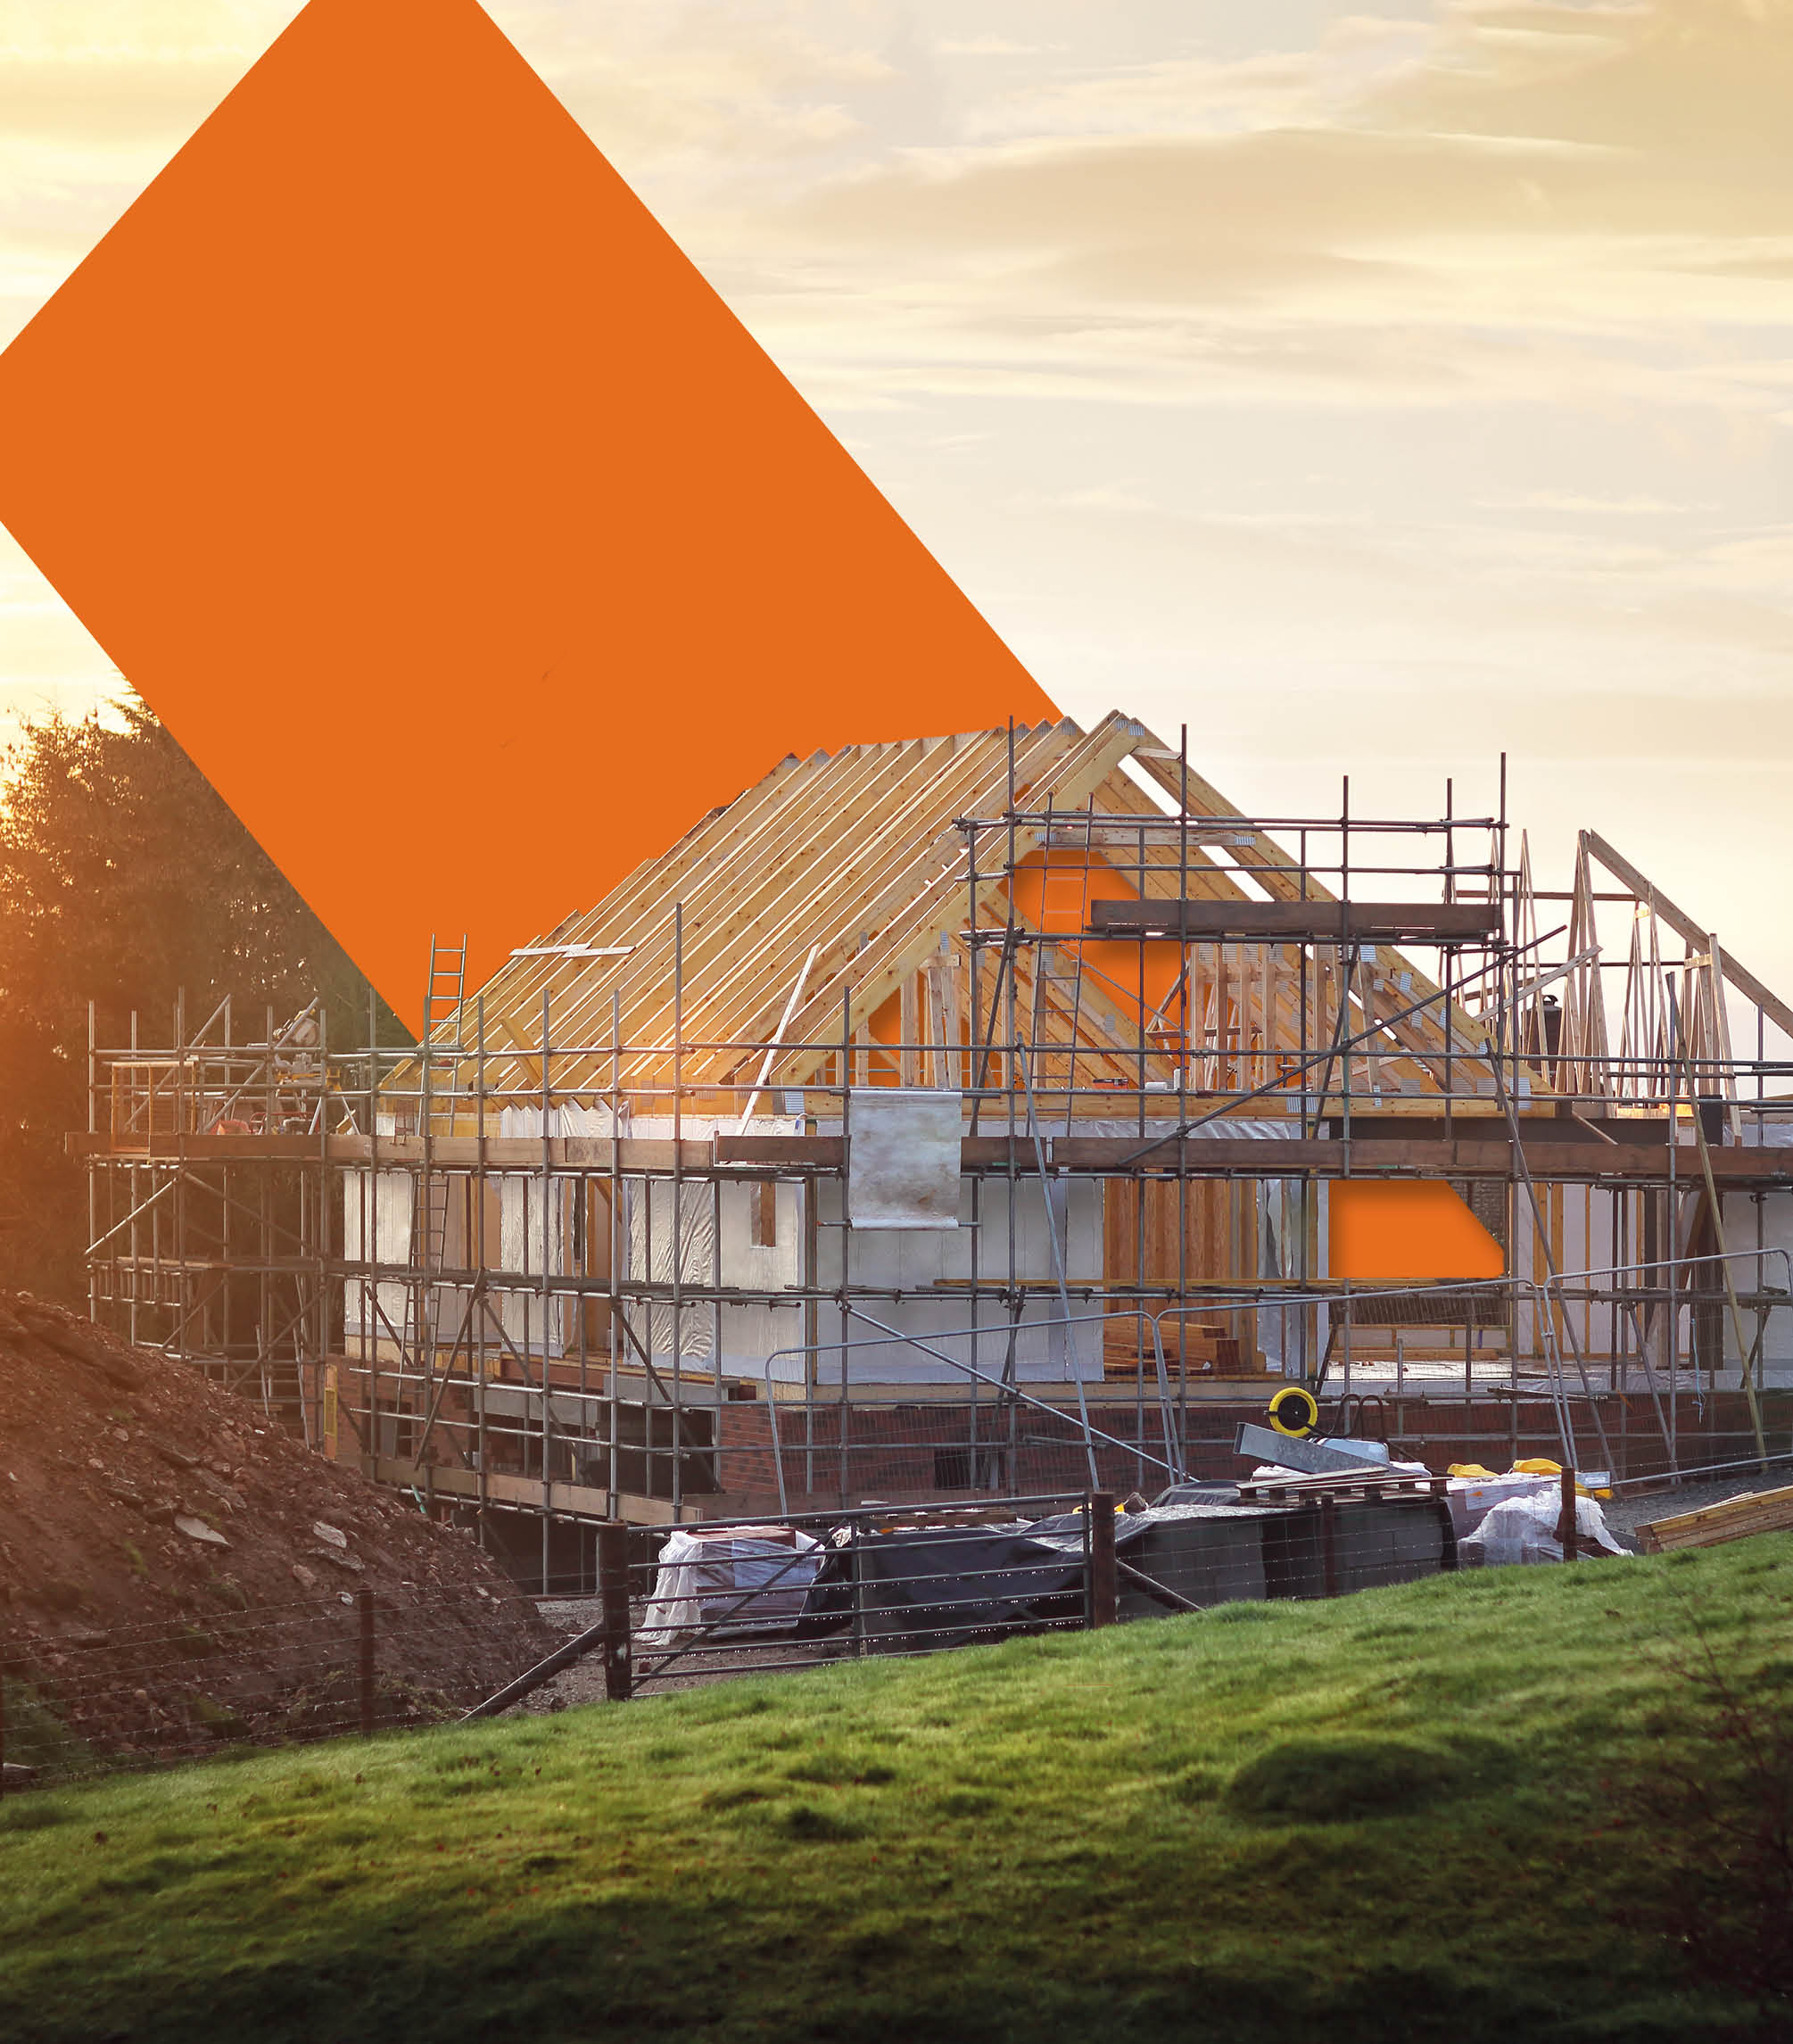 LABC brand image showing orange geometric shapes from the logo as part of a house construction site